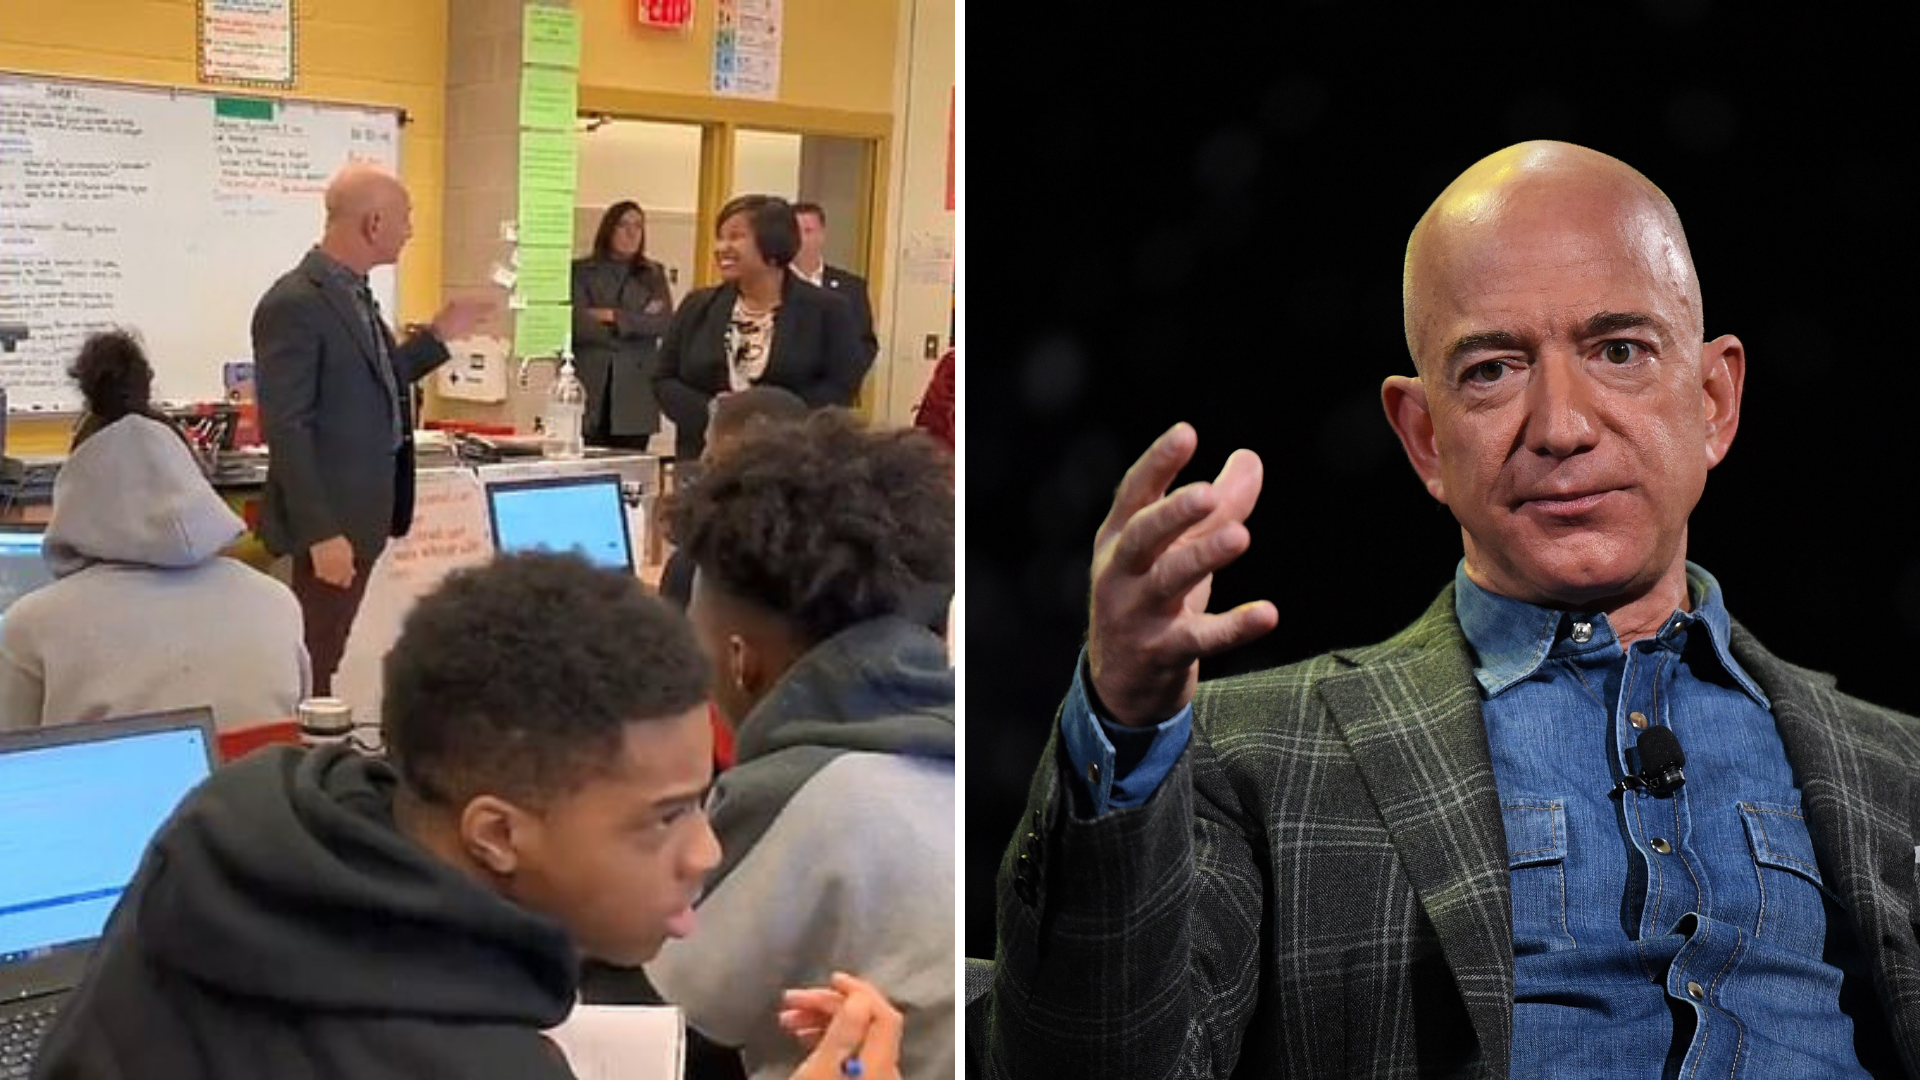 'Who is Jeff Bezos?': Kids confused as Amazon boss walks into computer class